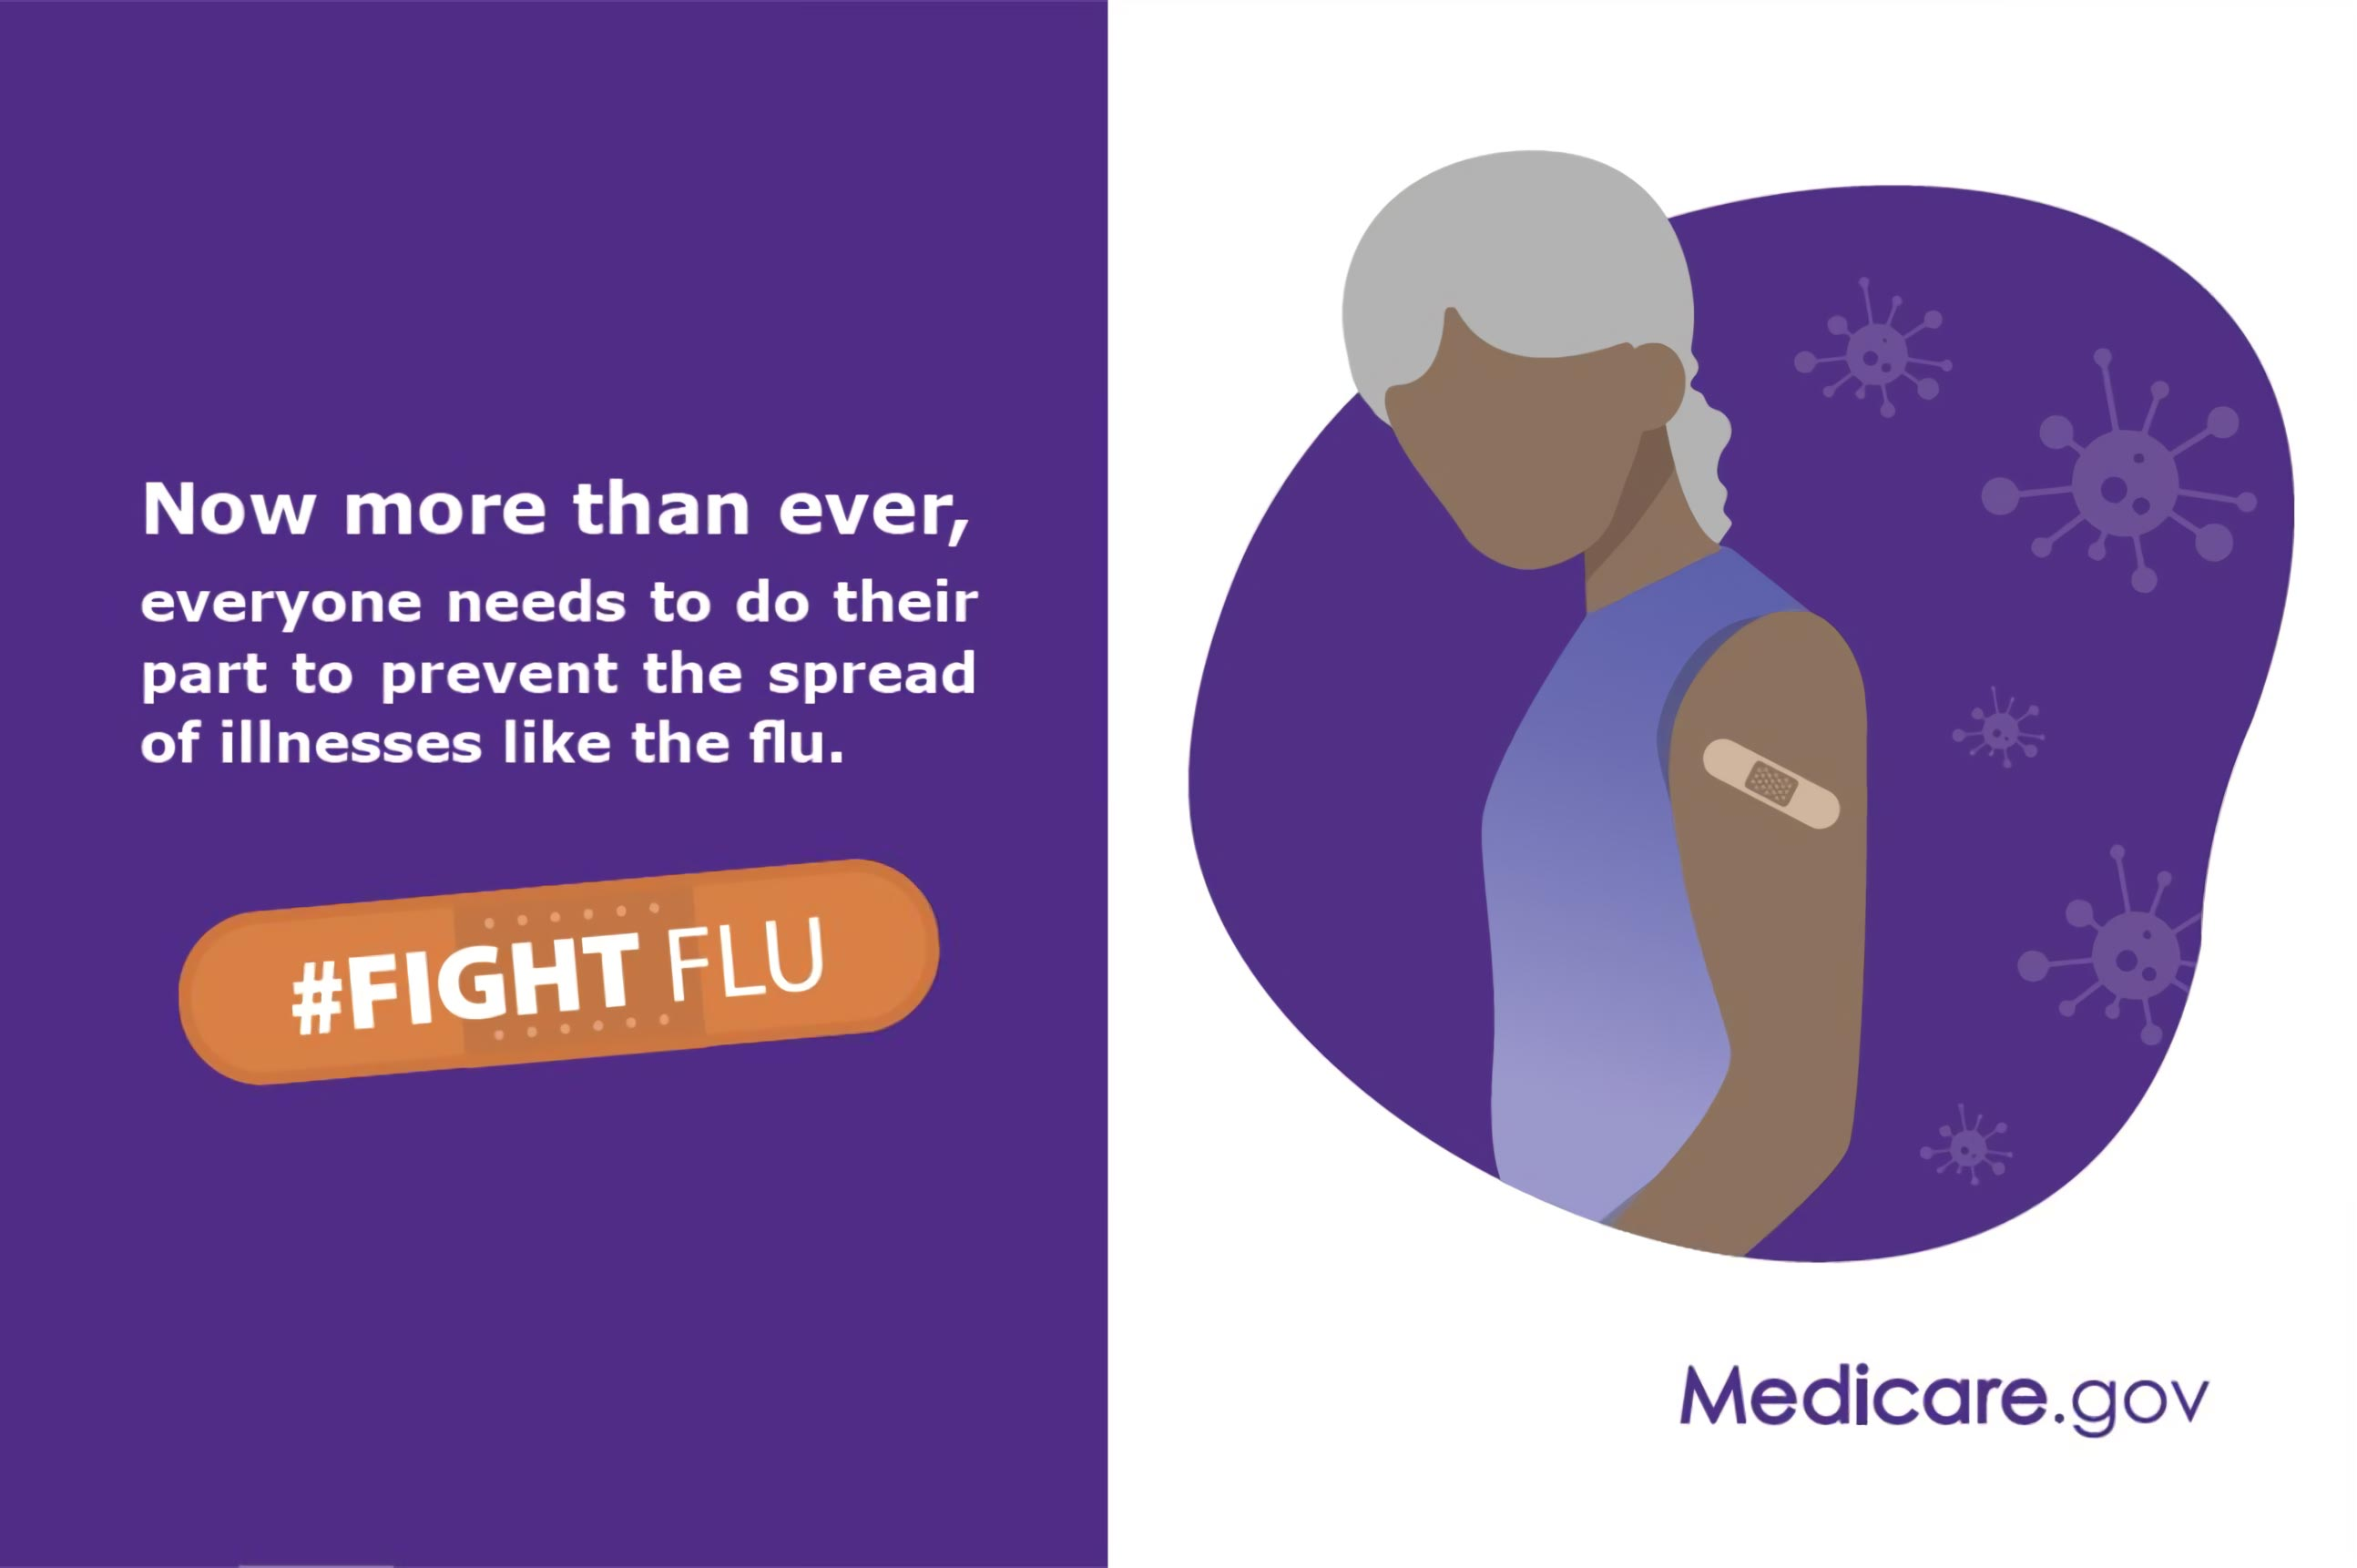 Now more than ever, everyone needs to do their part to prevent the spread of illnesses like the flu.  #FIGHT FLU  Medicare.gov